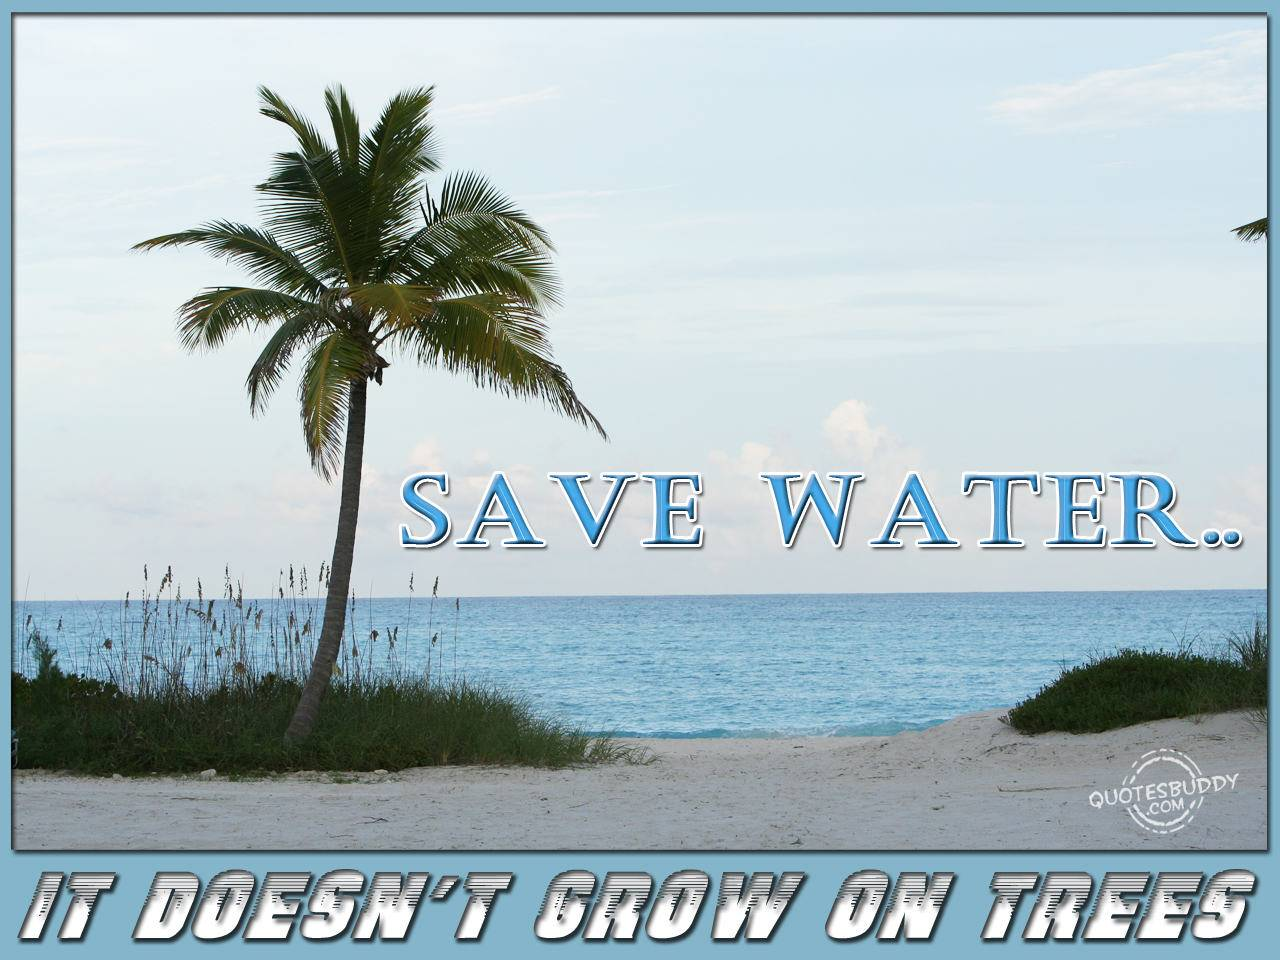 Save Water, It Doesn't Grow On Tree